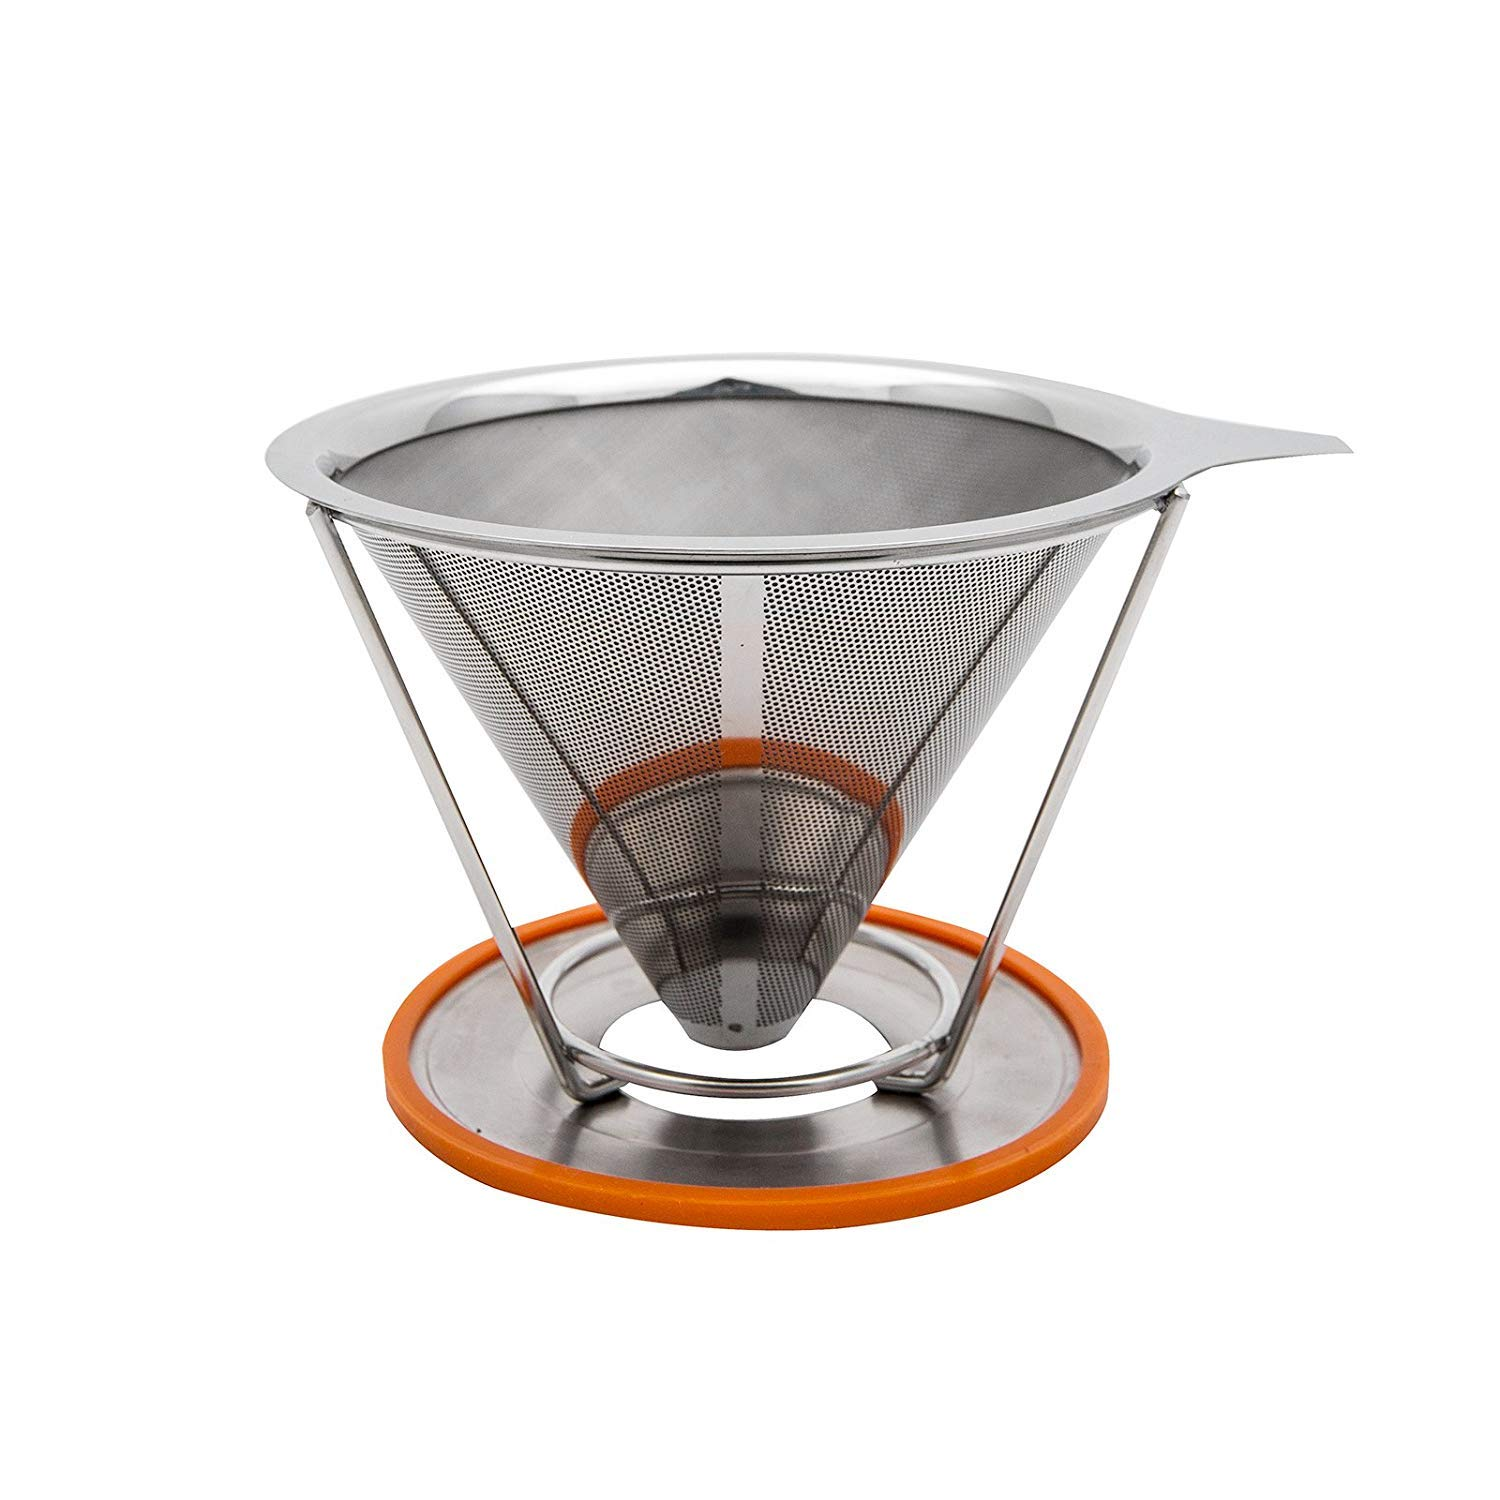 TOPHOMER Pour Over Coffee Cone Dripper - Stainless Steel Coffee Maker - Double Mesh Reusable Filter - Single Cup Coffee Brewer - No Need For Paper - with Cup Stand Coffee Maker&Brewer